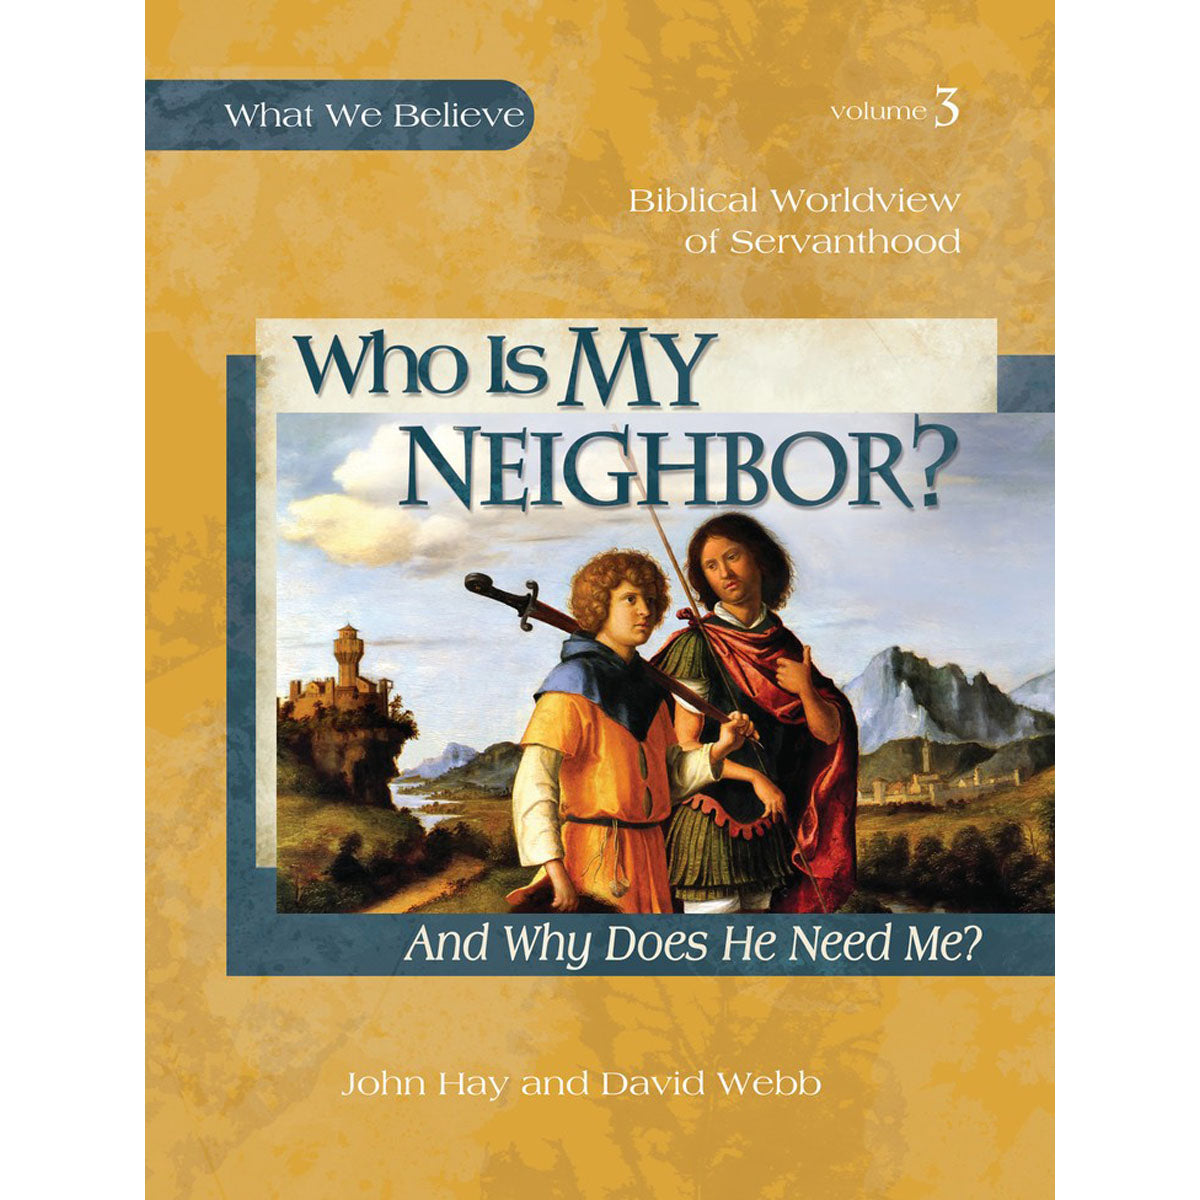 Who Is My Neighbor? And Why Does He Need Me?, Textbook (3 What We Believe)(Hardcover)